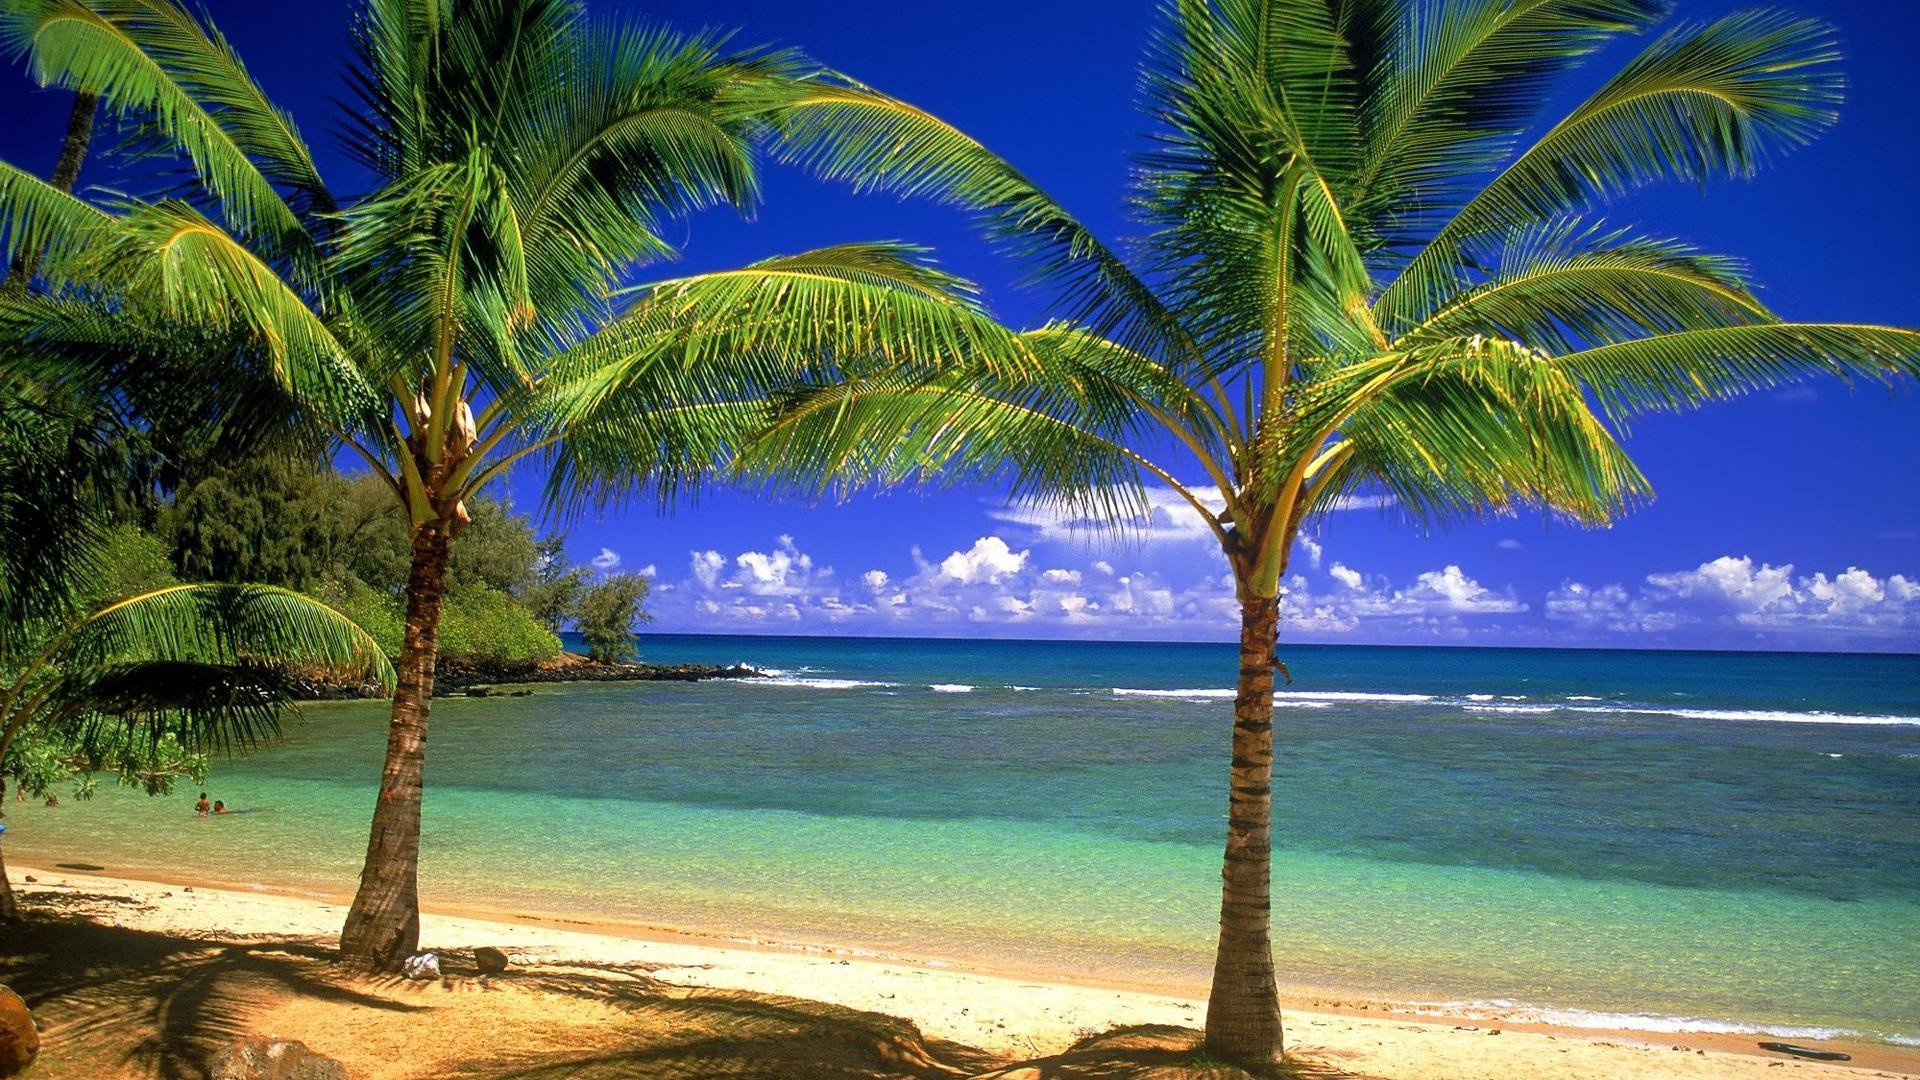 Hd Wallpapers 1080p Beaches PC Android iPhone and iPad Wallpapers 1920x1080